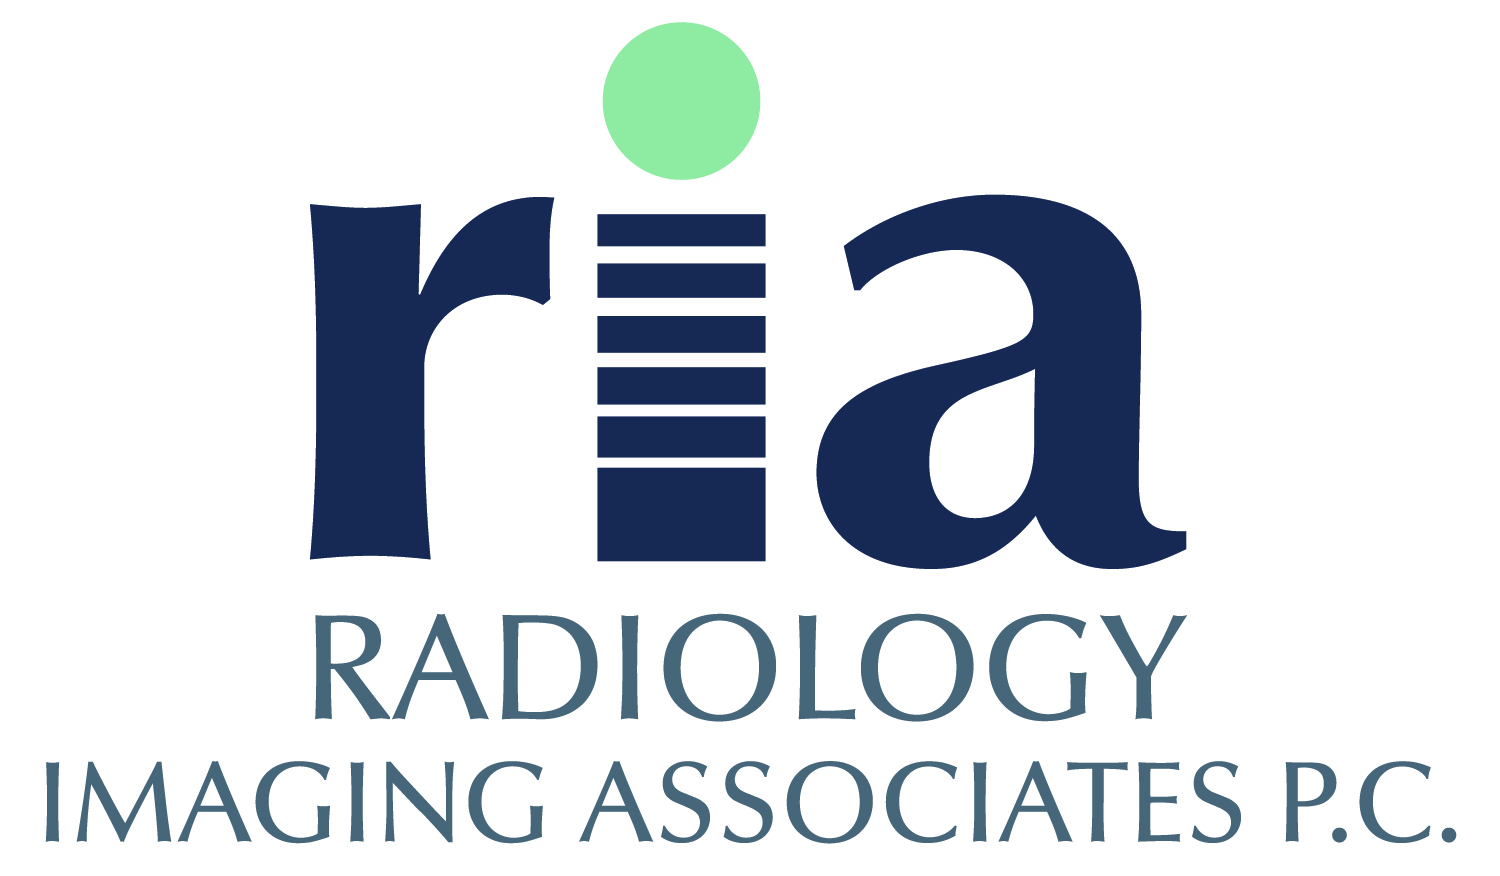 Radiology Imaging Associates P.C.